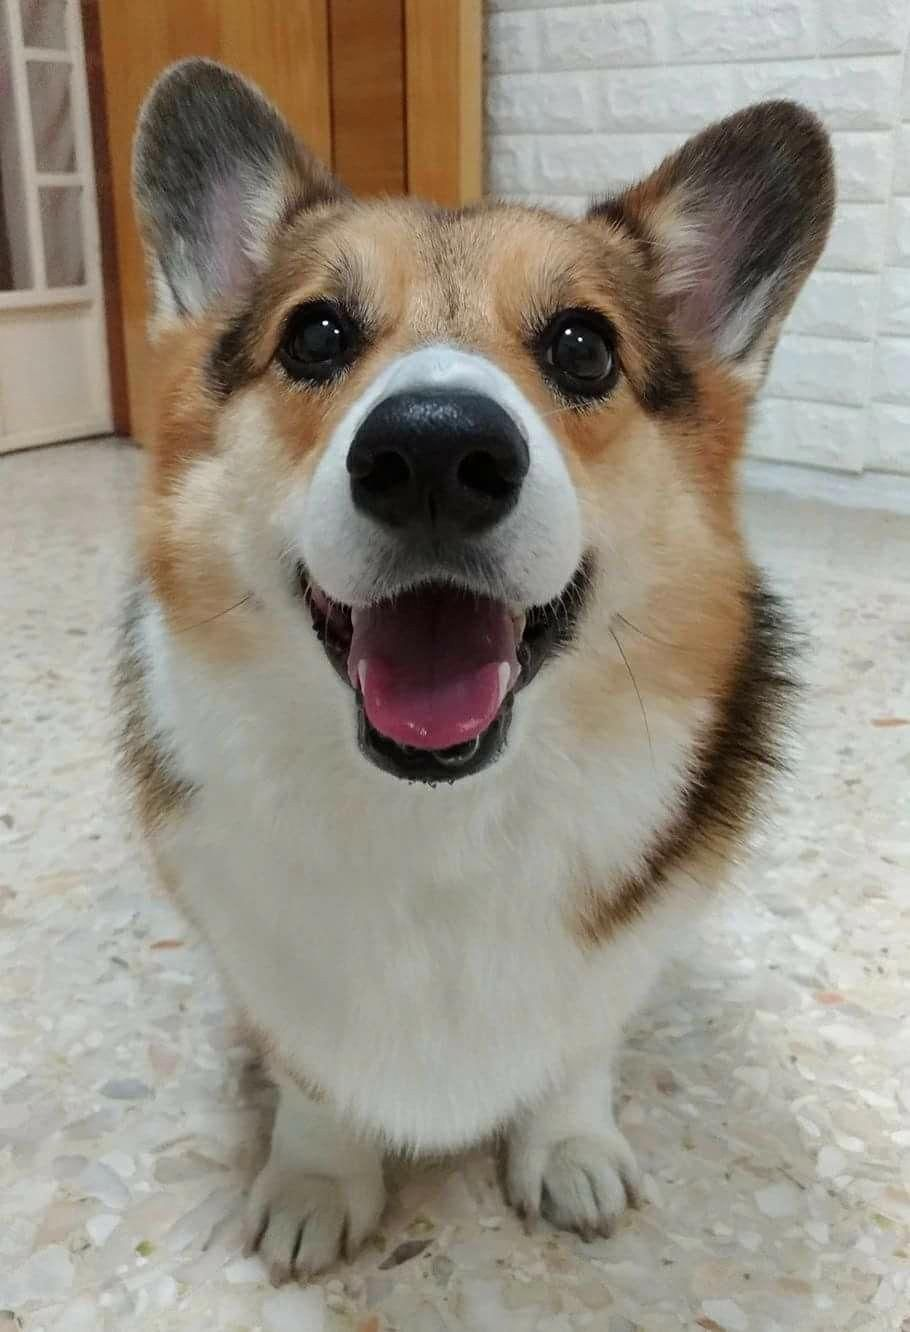 Corgi Smile Corgis Corgi Dog Cute Animals Corgi